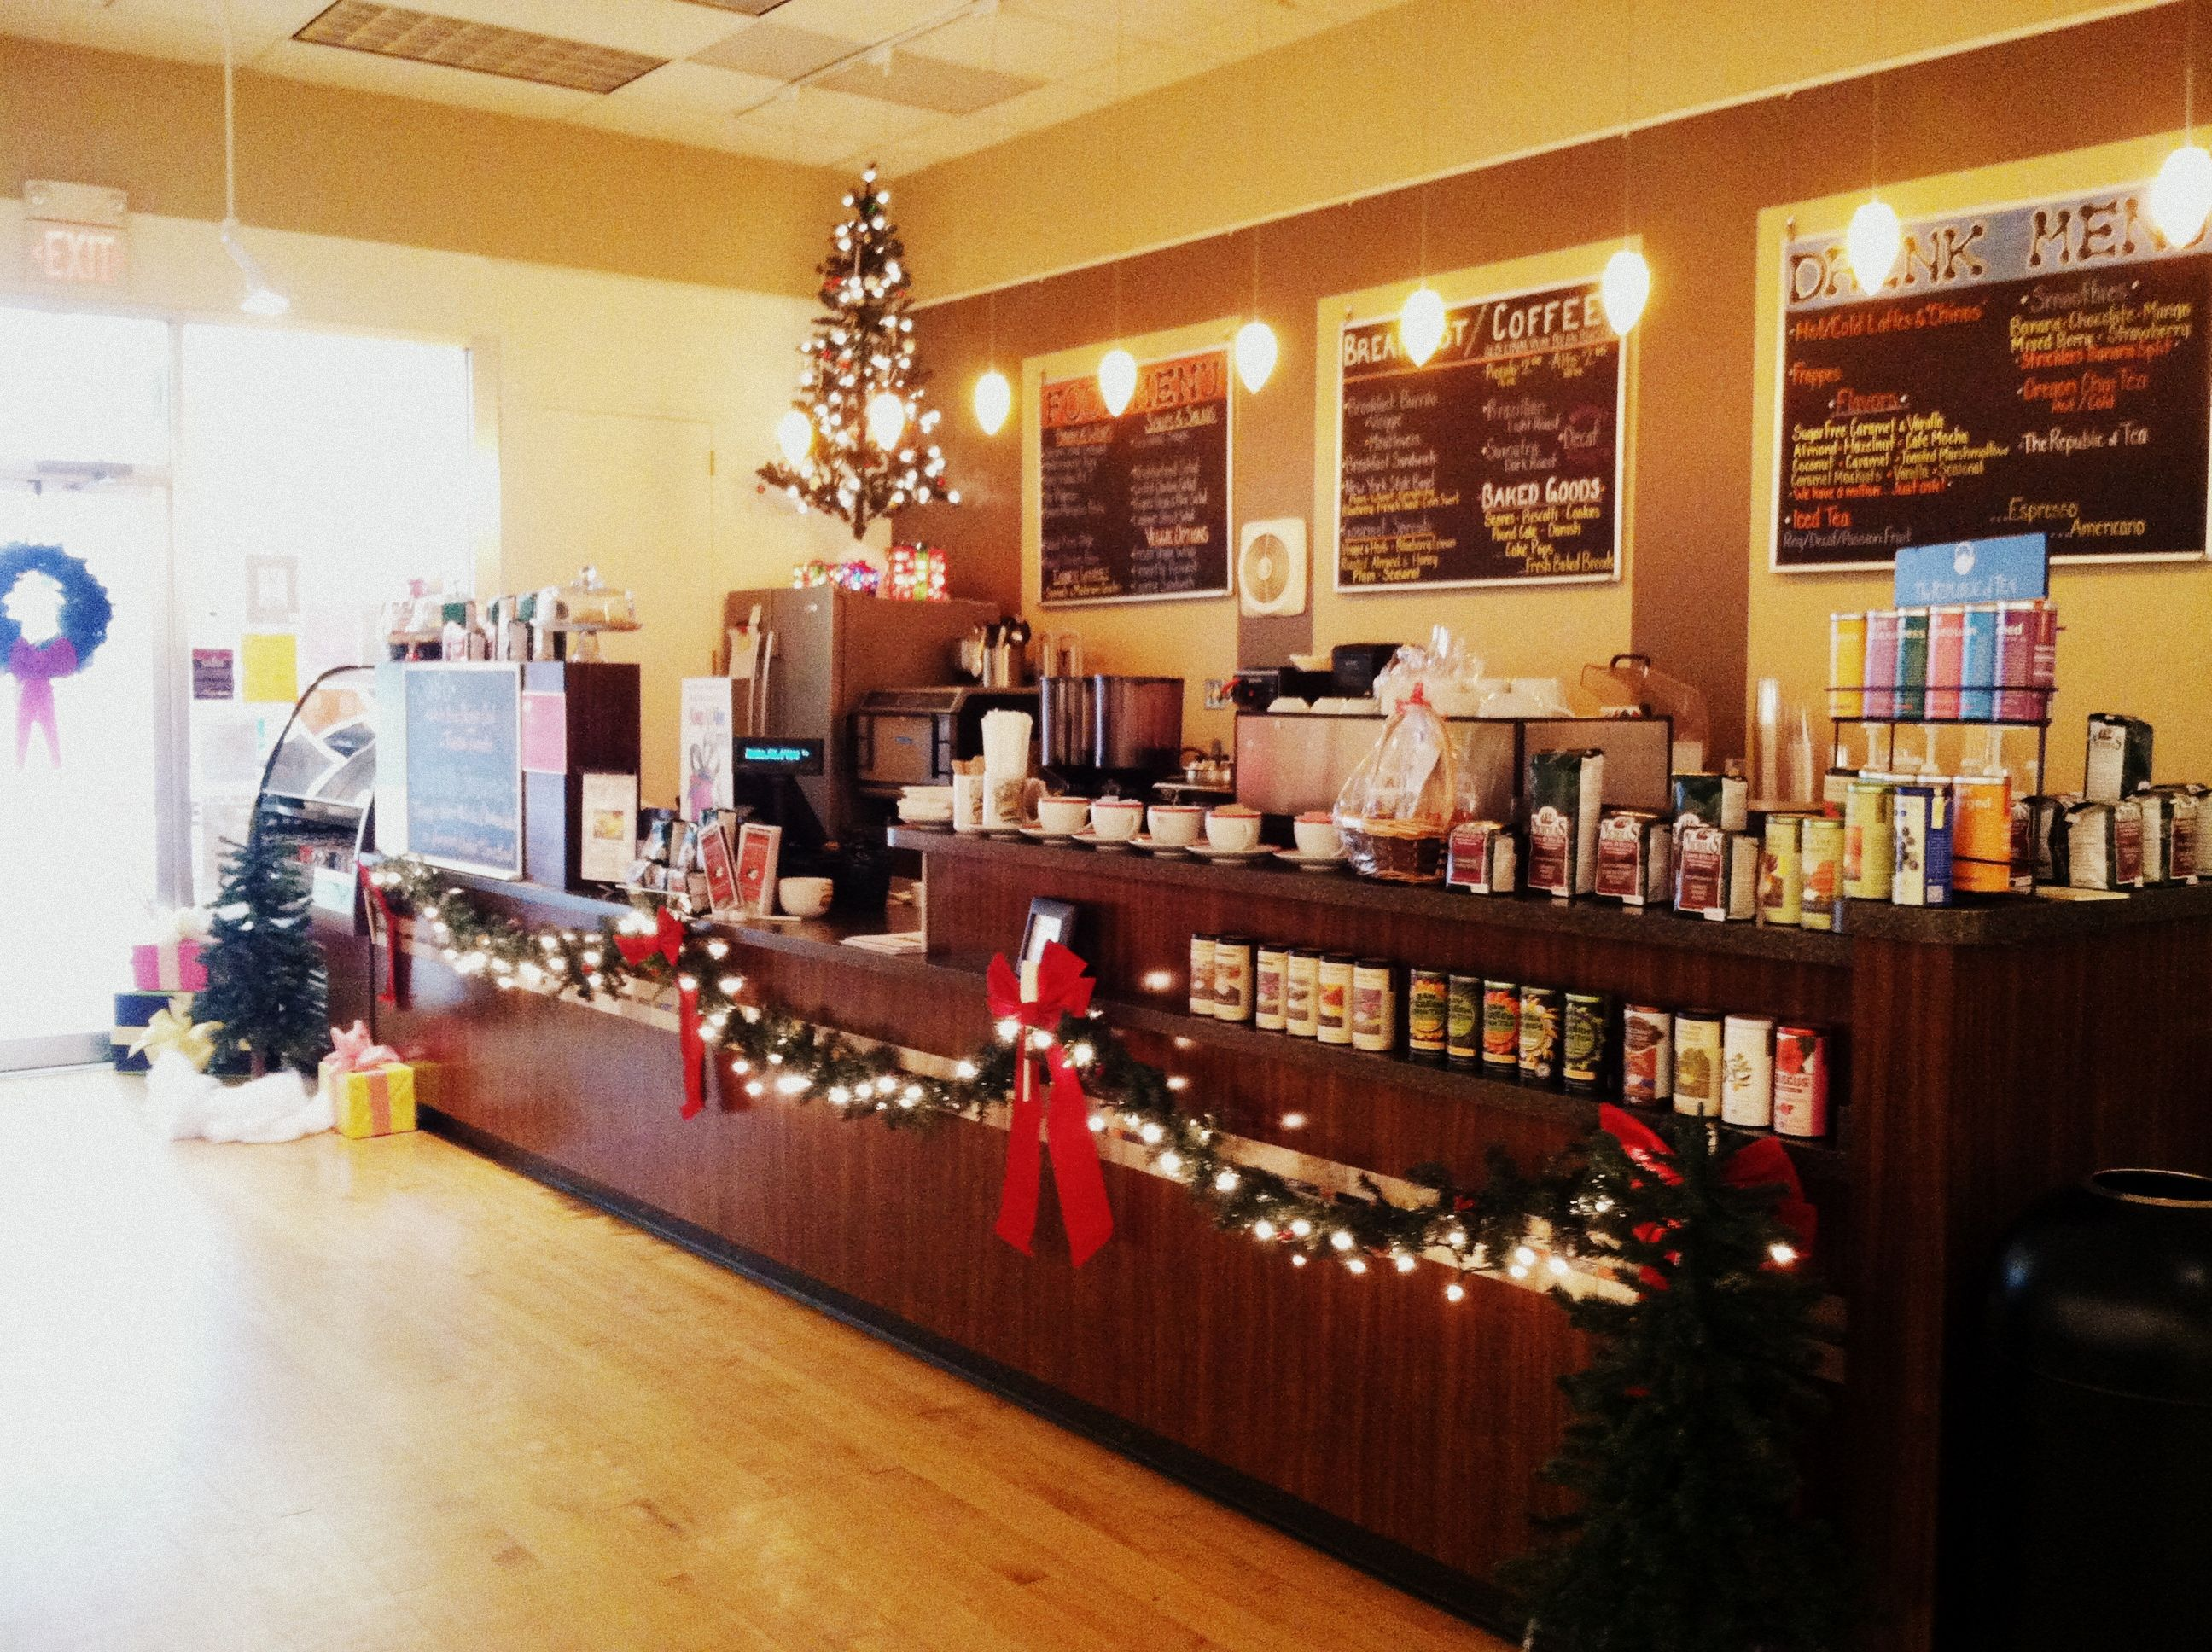 The Neighborhood Cafe is decorated for the Christmas season! Stop in to try our seasonal specials. View our full menu at www.latrobeartcenter.org  #art #nonprofit